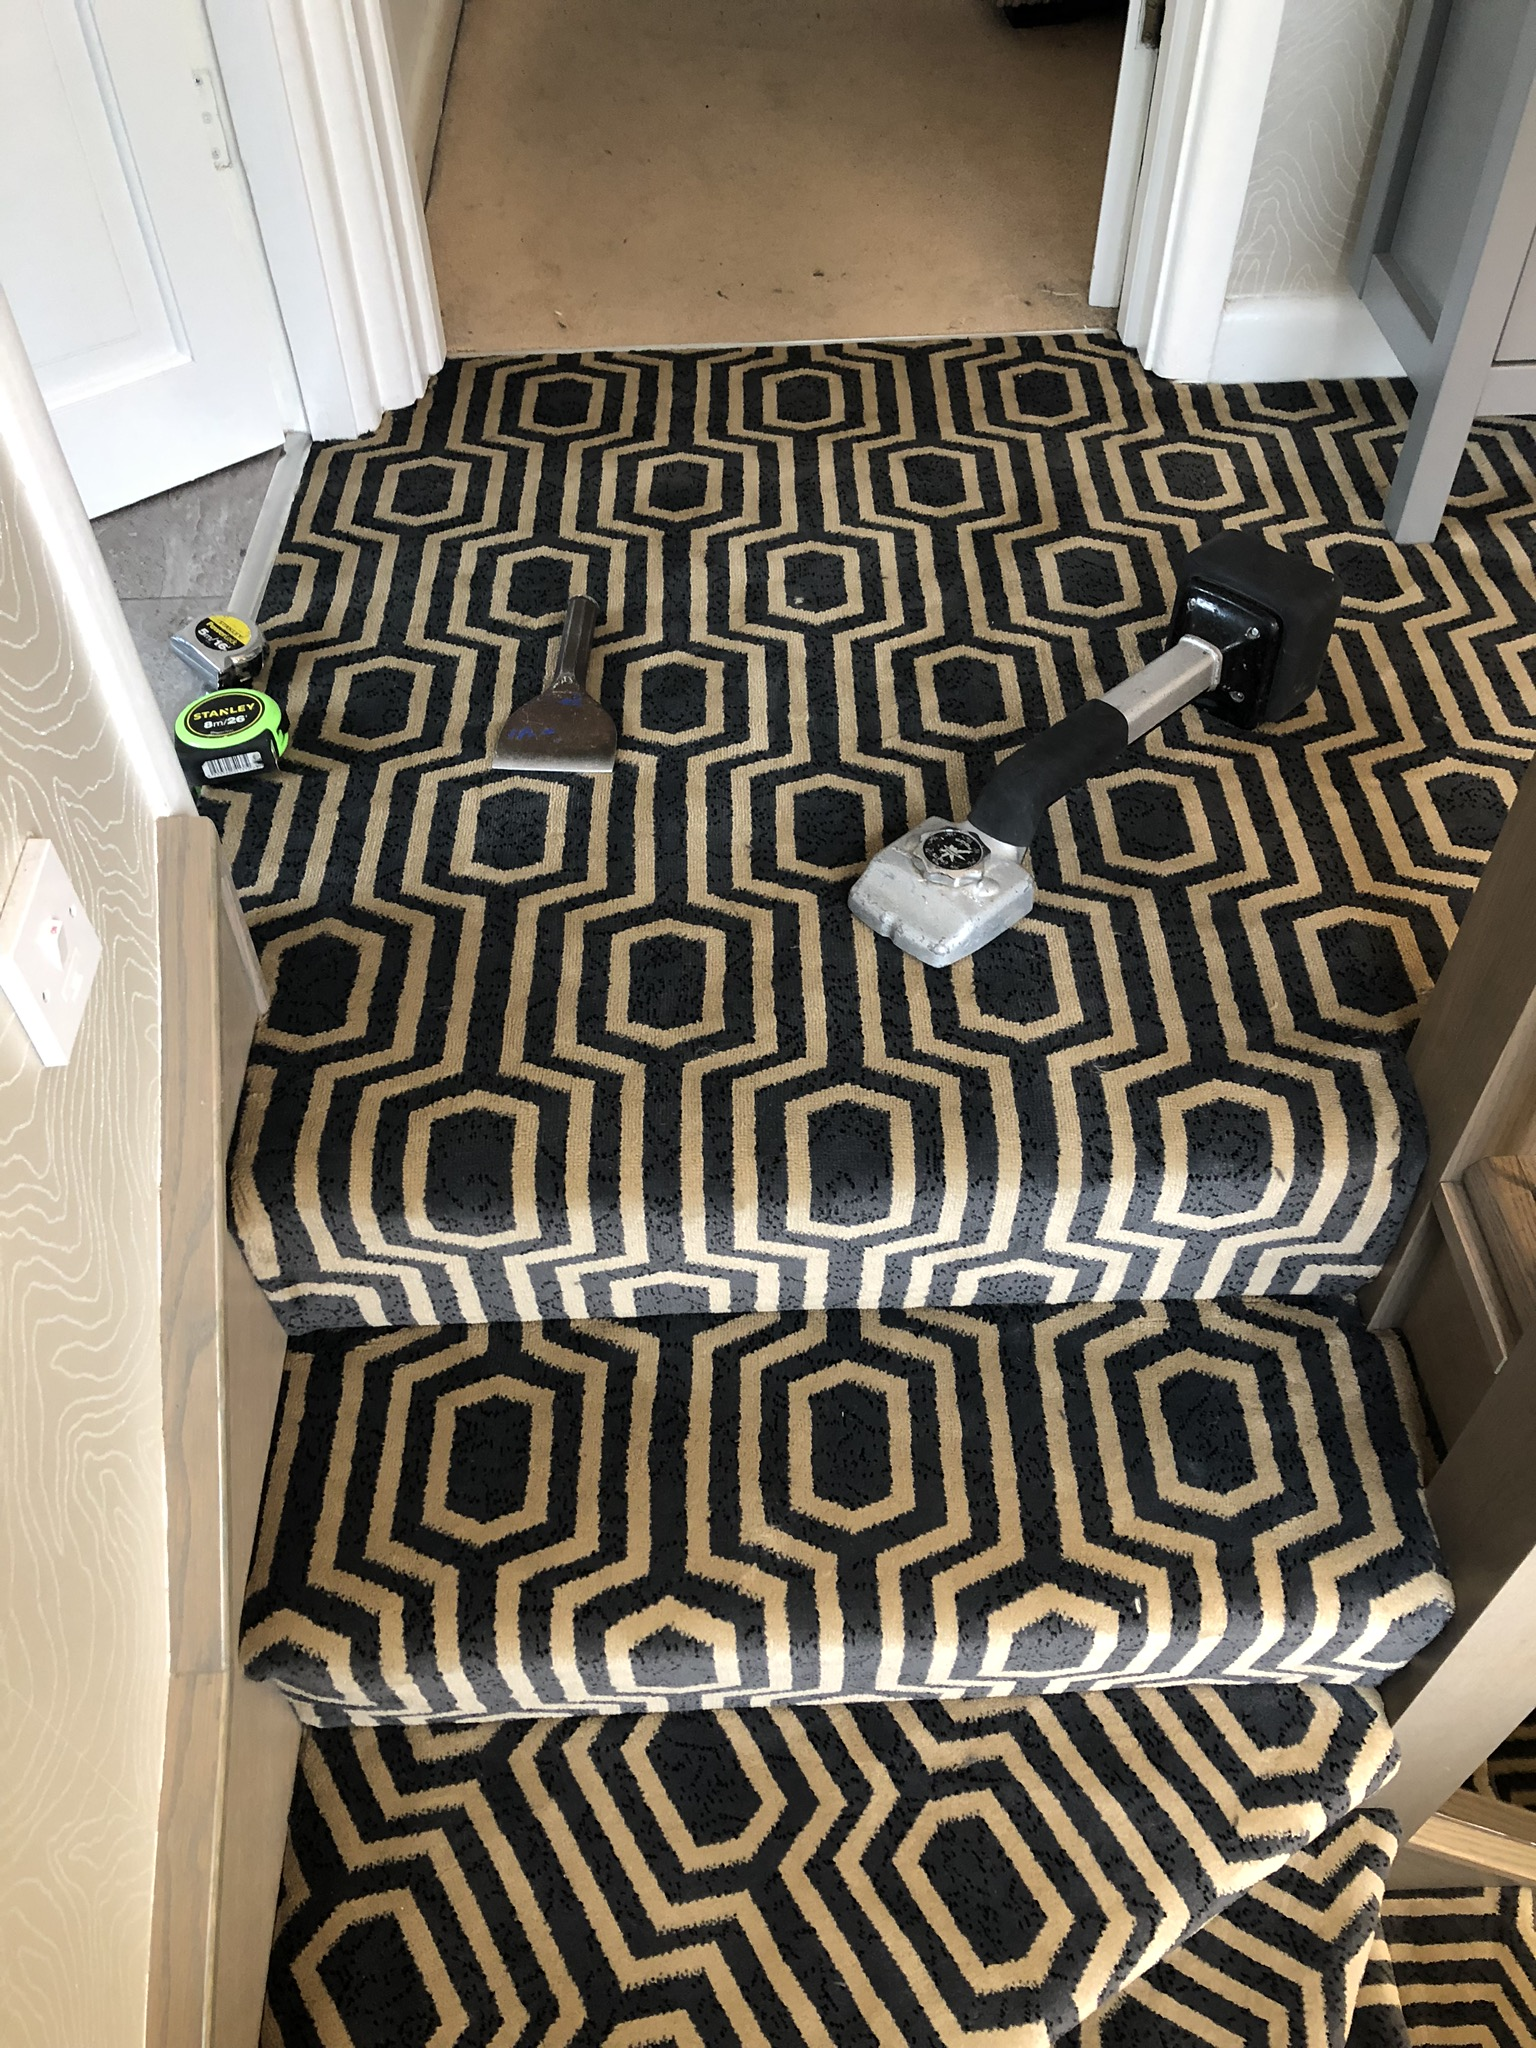 Black Axminster carpet installed in Acton 4